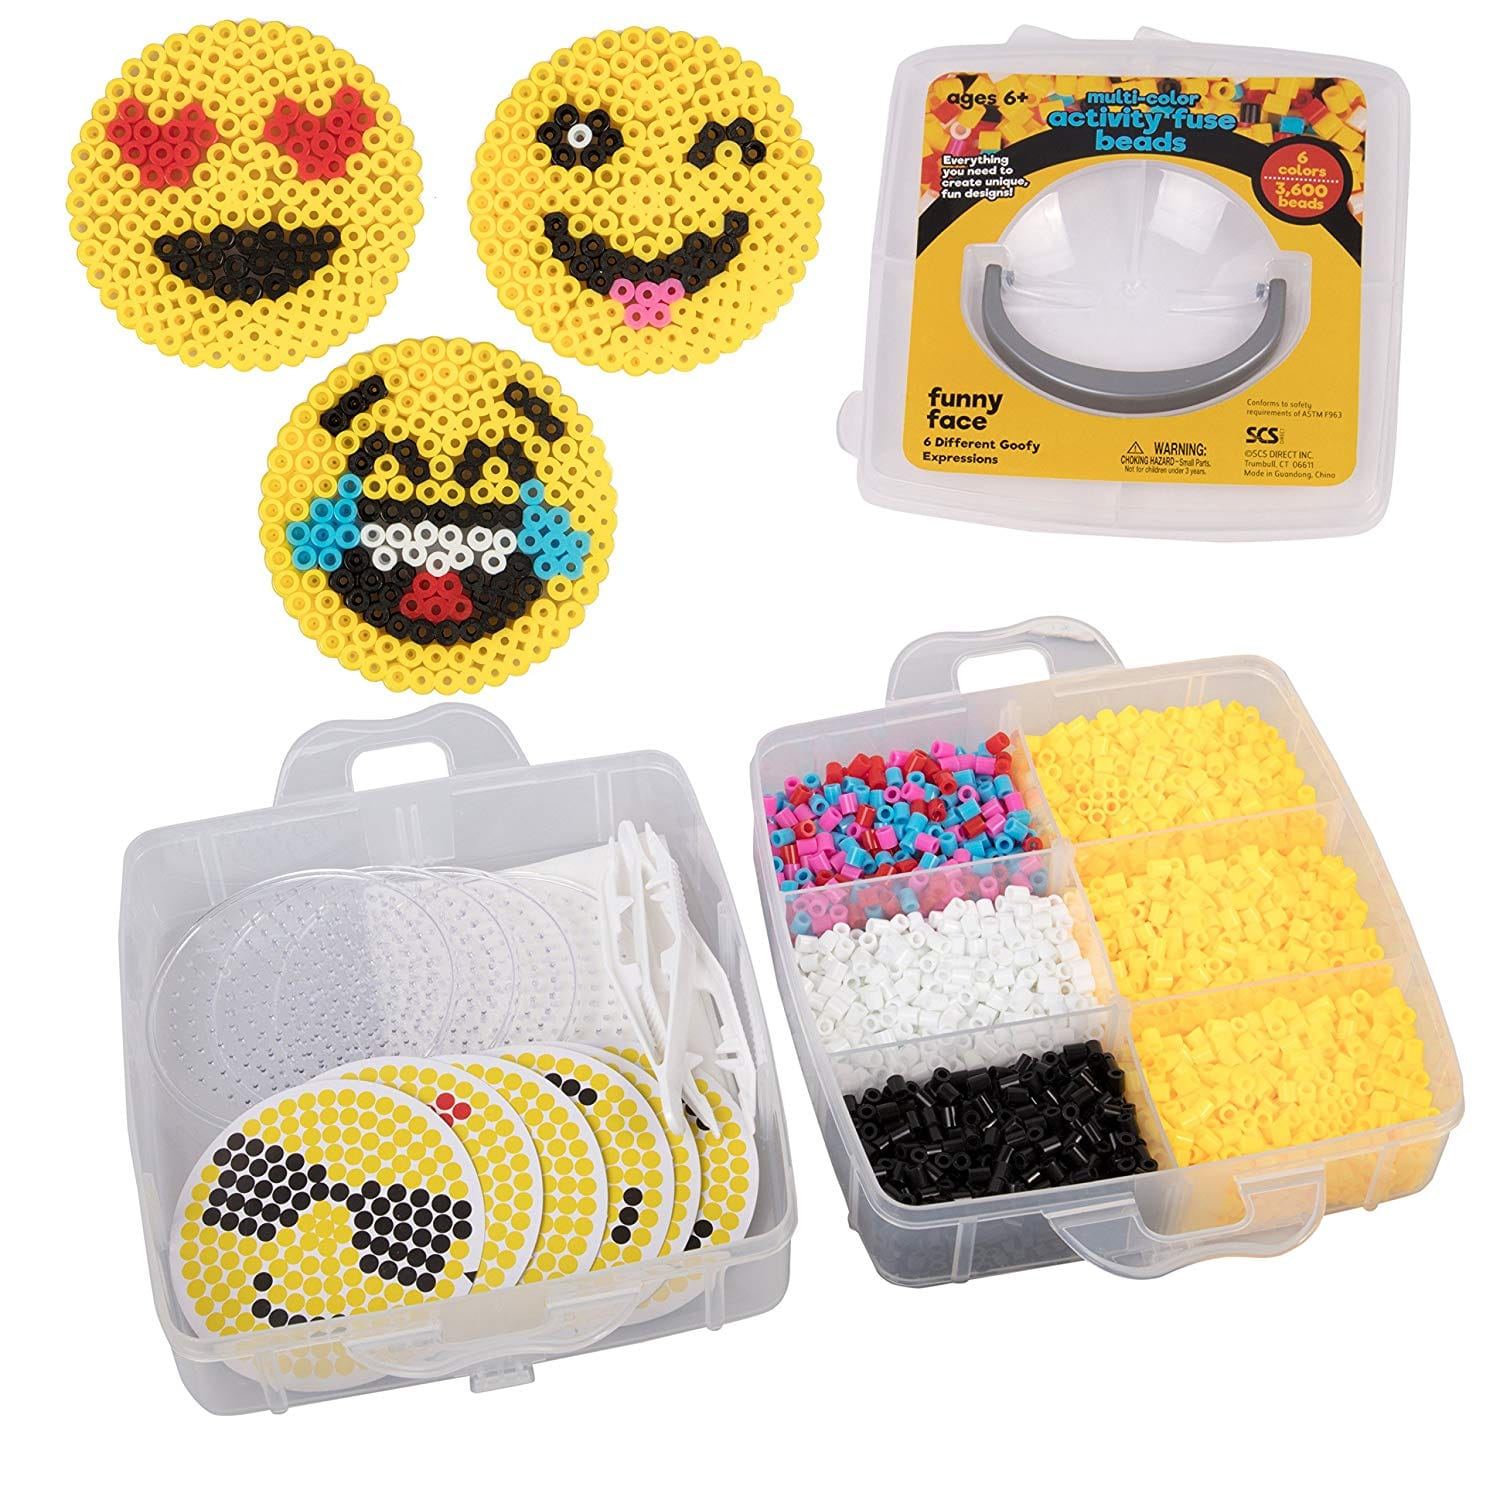 Emoji Smiley Face Fuse Beads - 6 Different Emojis - 3600pcs Beads (6 Colors), Tweezers, Peg Boards, Ironing Paper, Case - $7.50 + Free Shipping for Prime Members